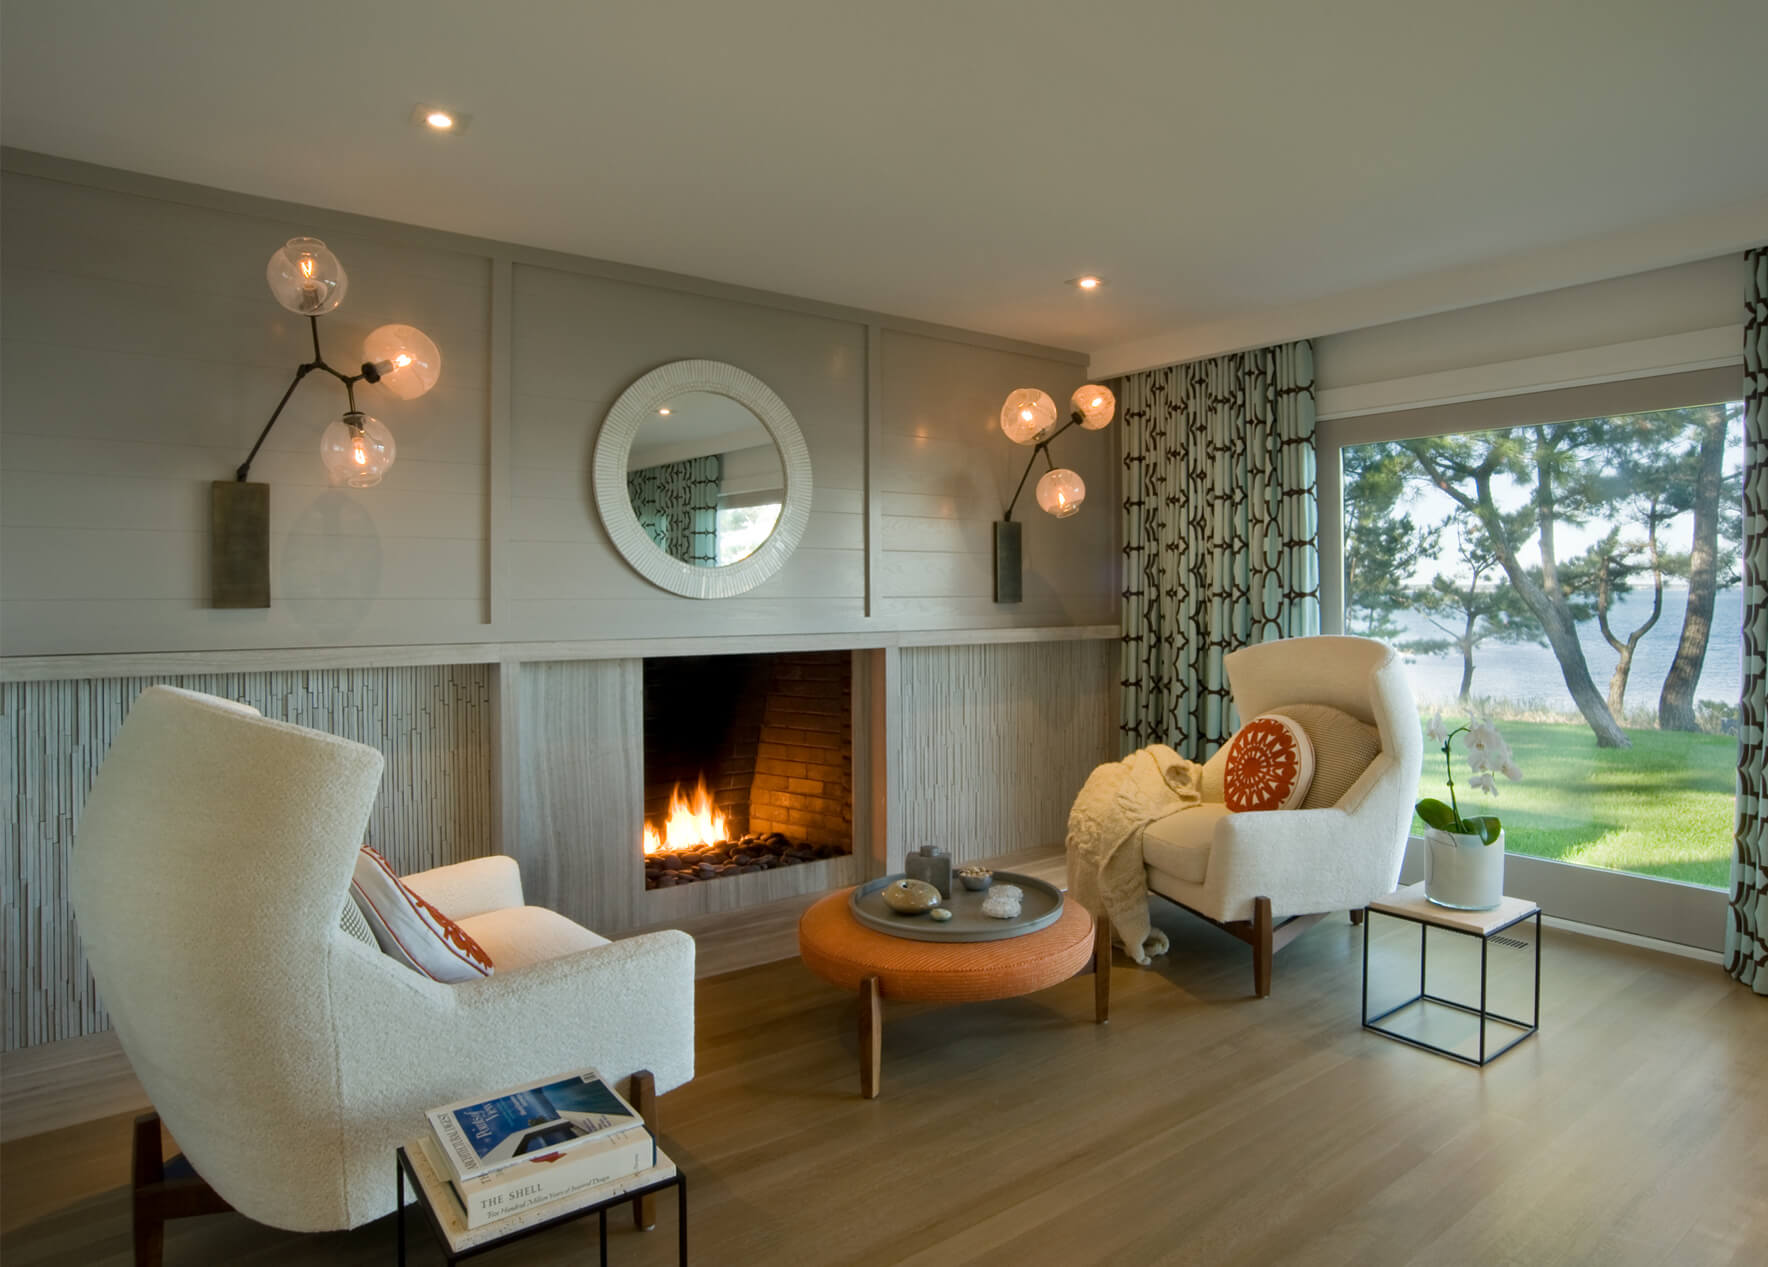 Hamptons house dhd architecture interior design - Hamptons beach house interior design ...